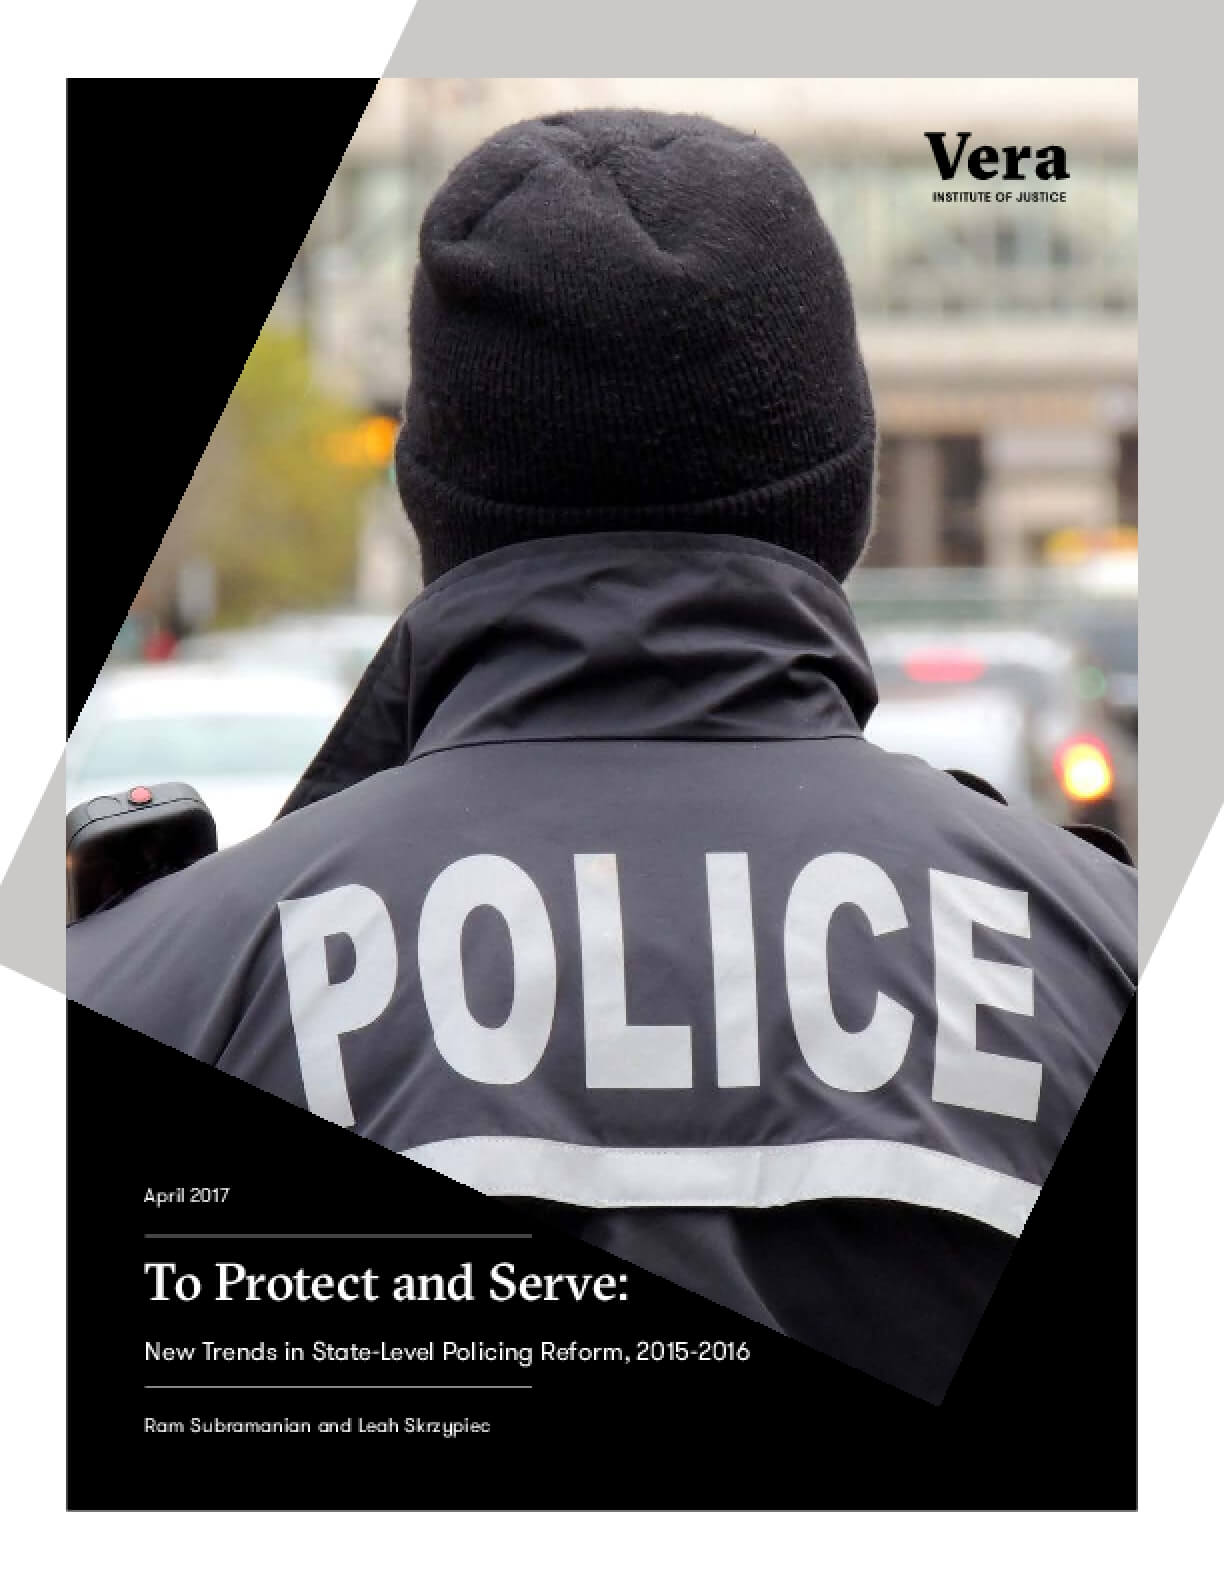 To Protect and Serve: New Trends in State-Level Policing Reform, 2015-2016